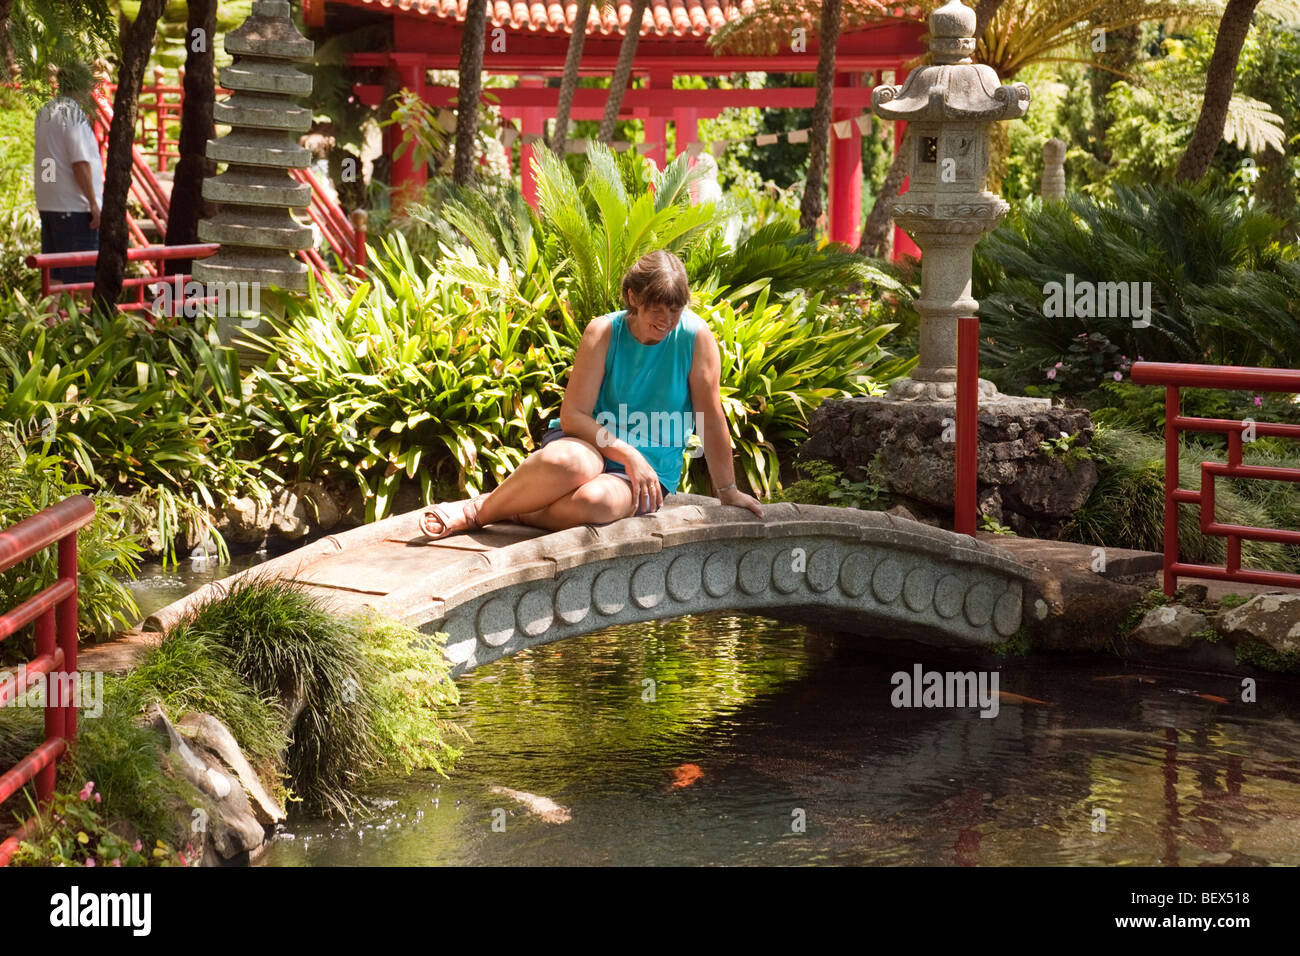 A woman tourist in the Japanese garden, Monte Palace gardens, Monte, Funchal, Madeira - Stock Image